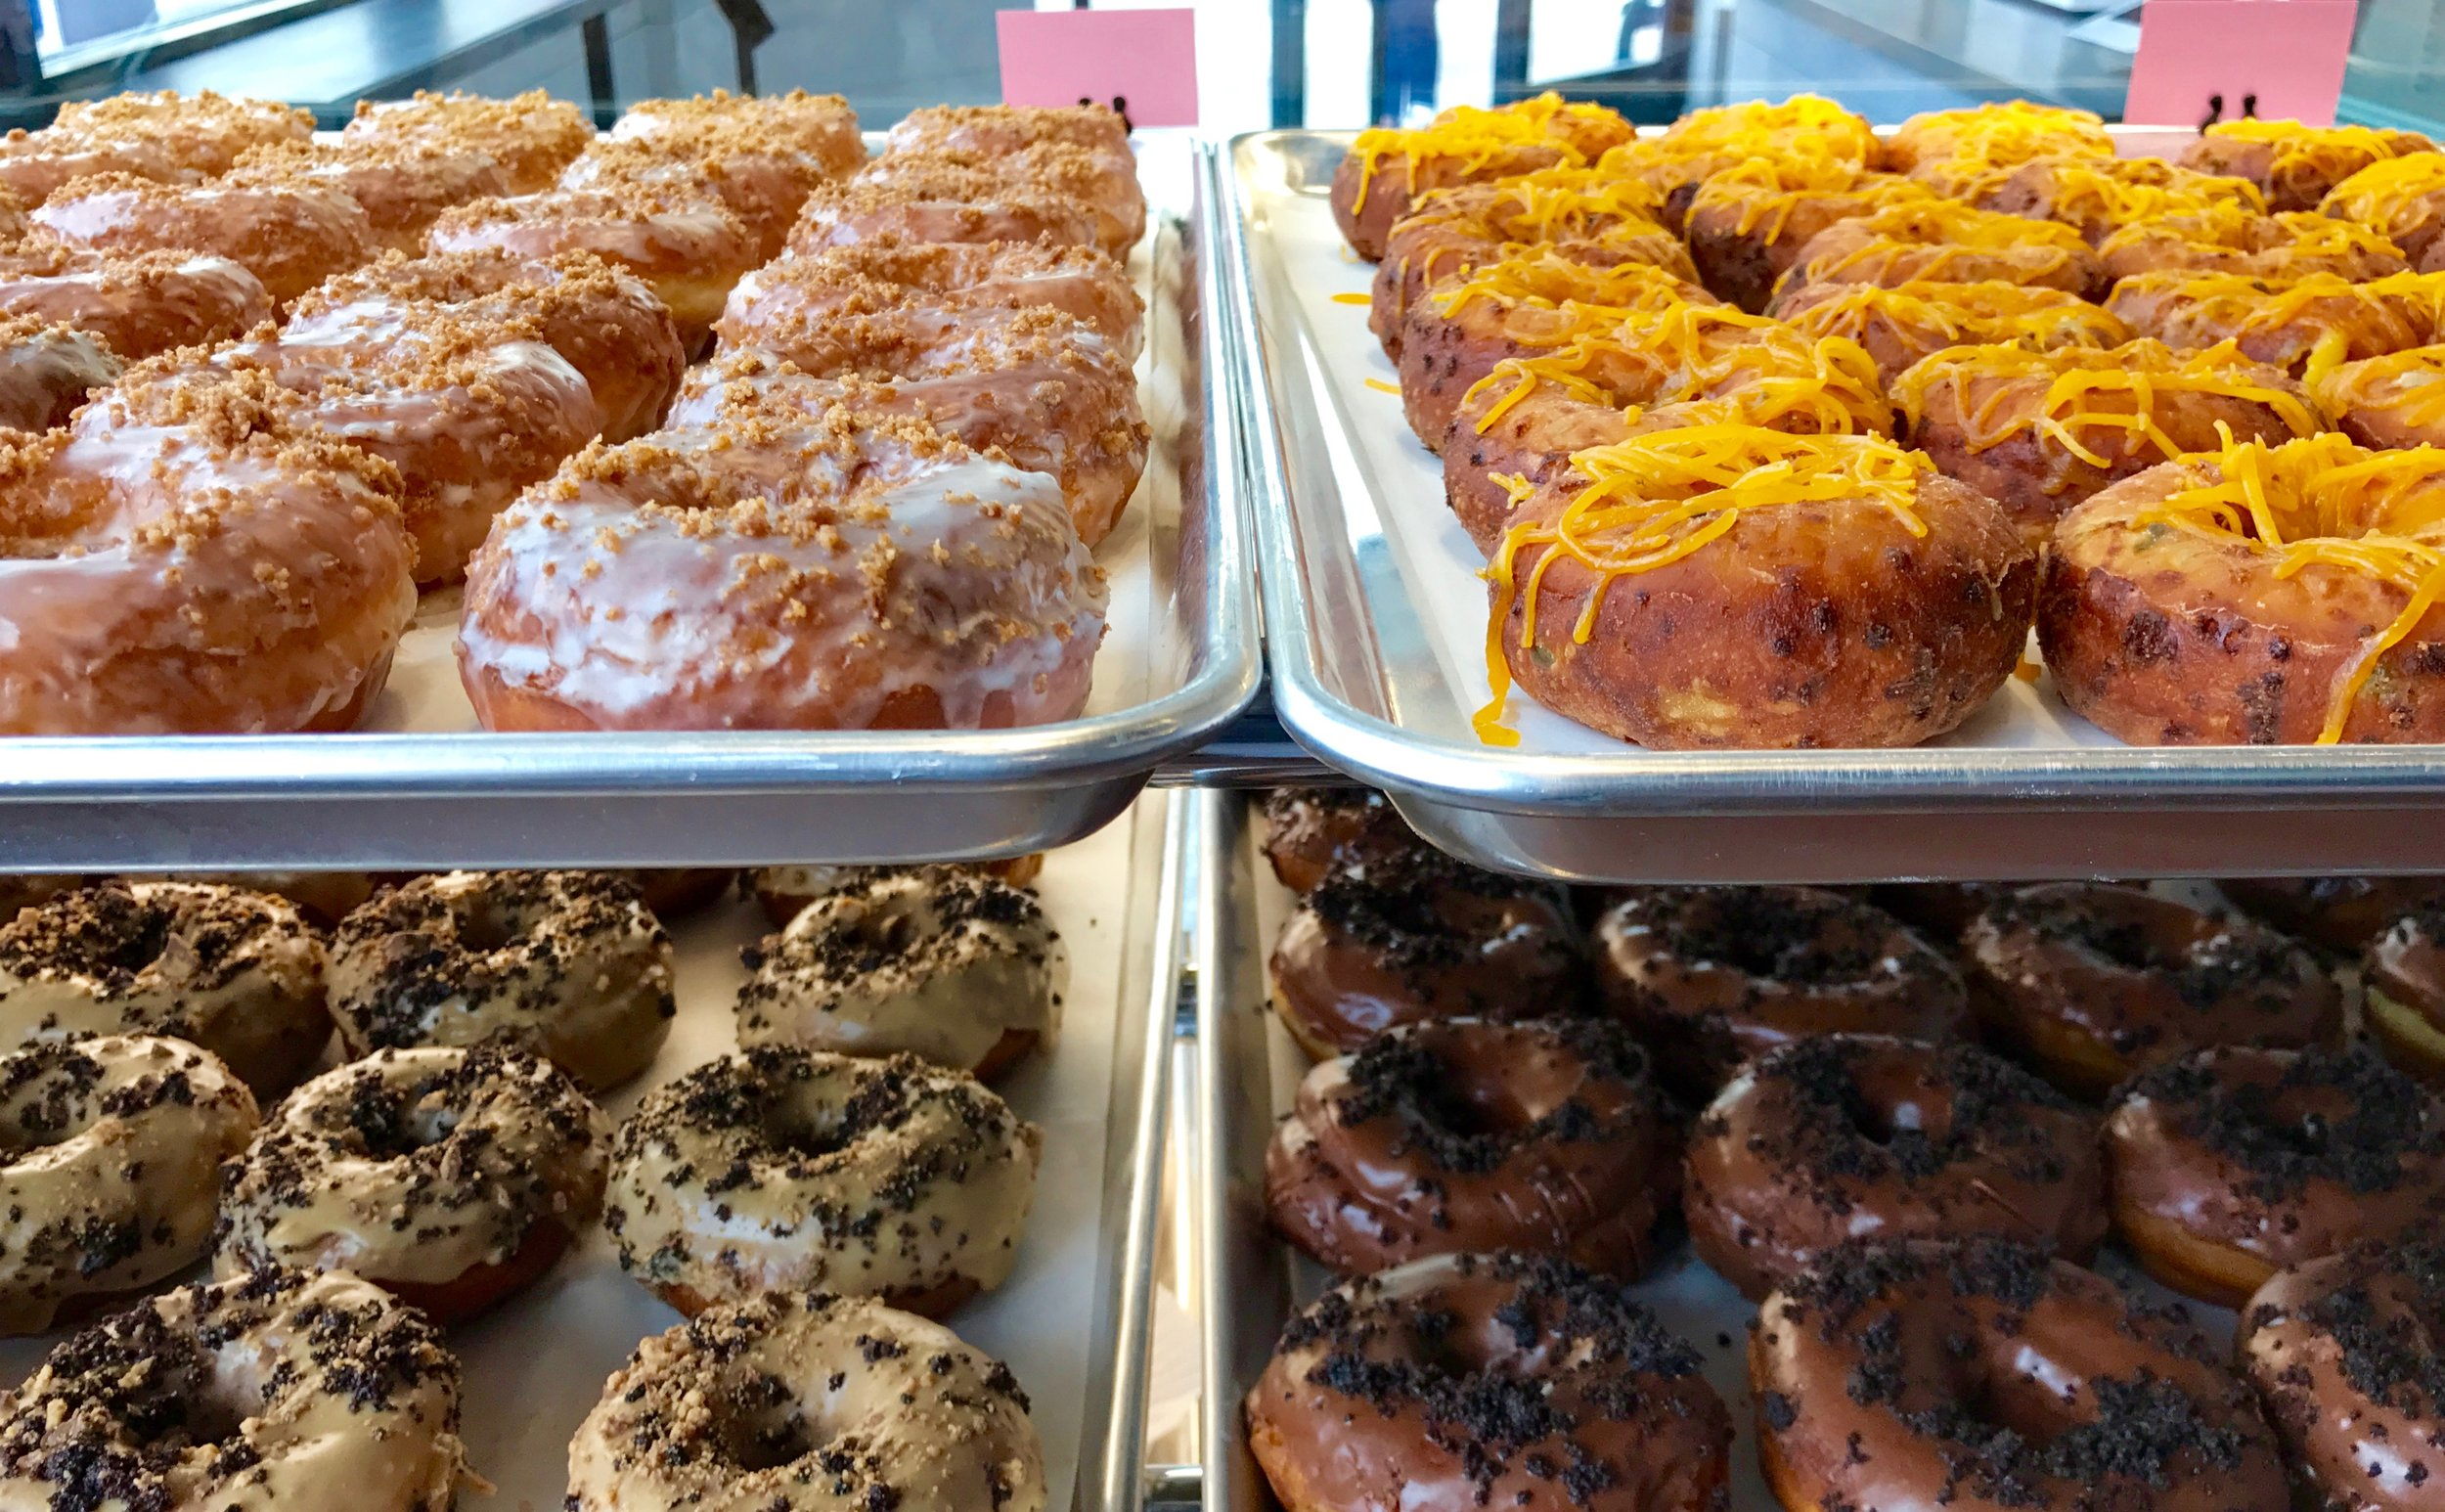 pans of donuts